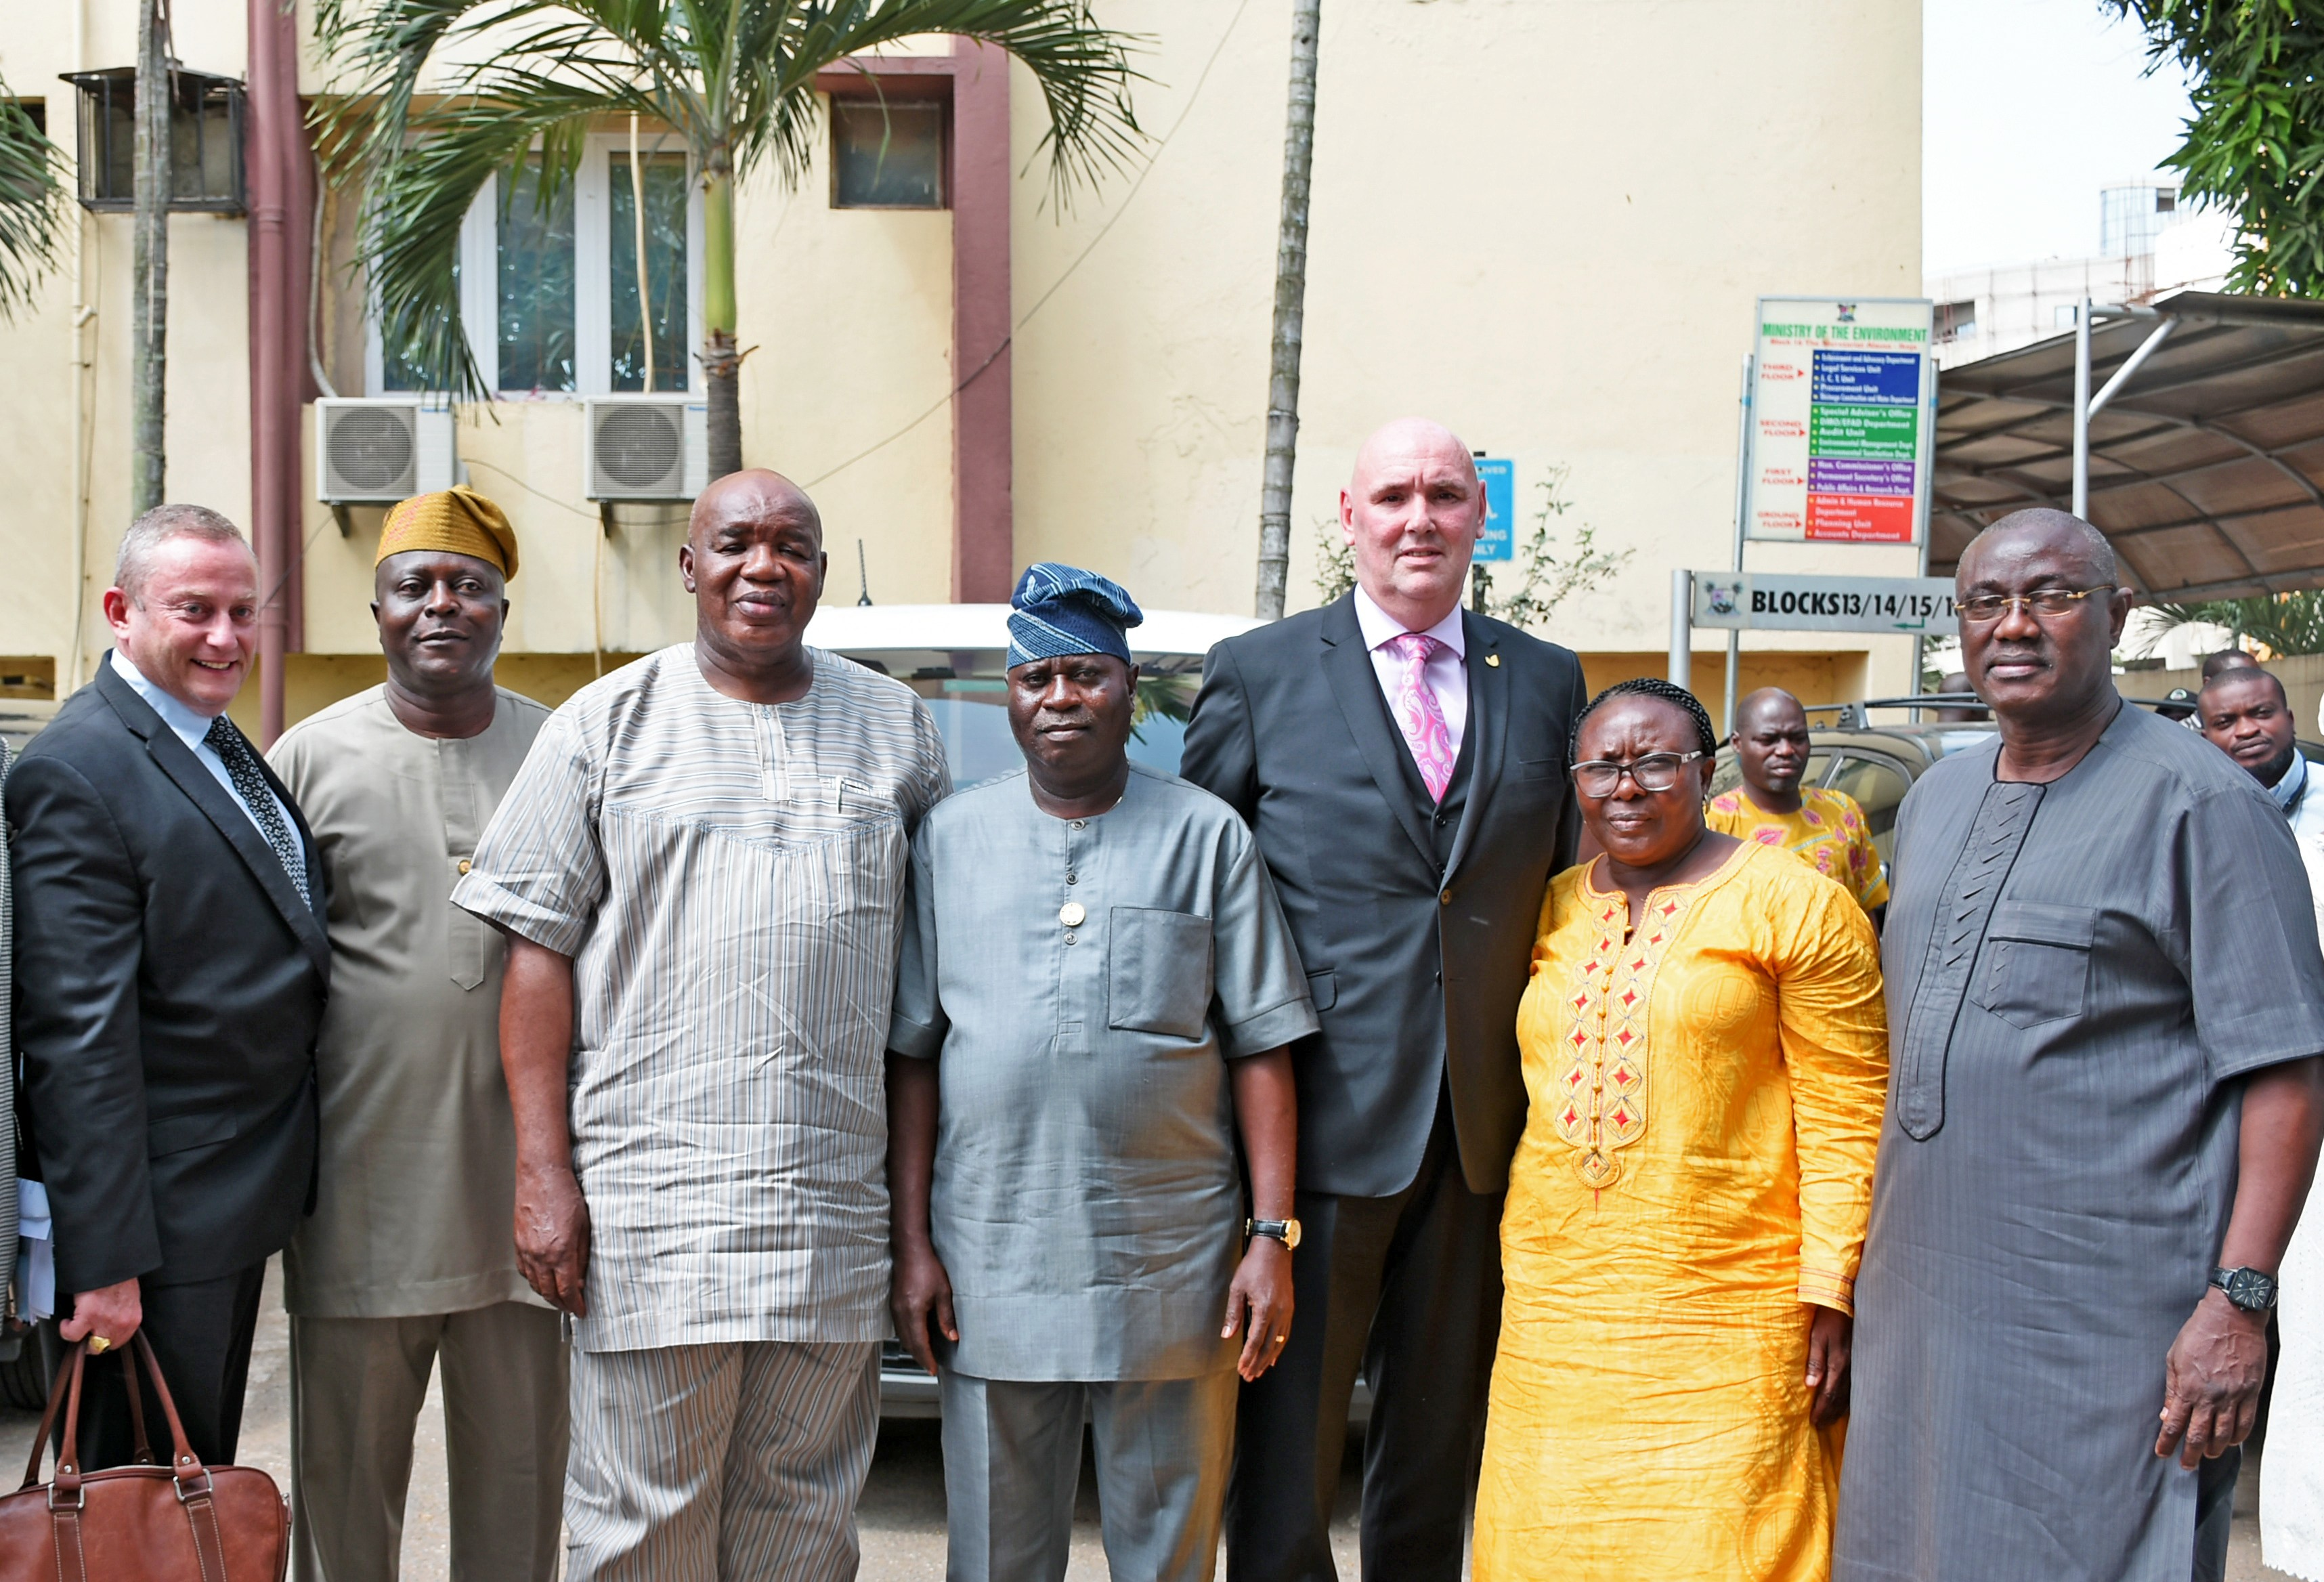 PSP Operators, community leaders embrace Cleaner Lagos Initiative  *As normalcy gradually returns to Lagos streets